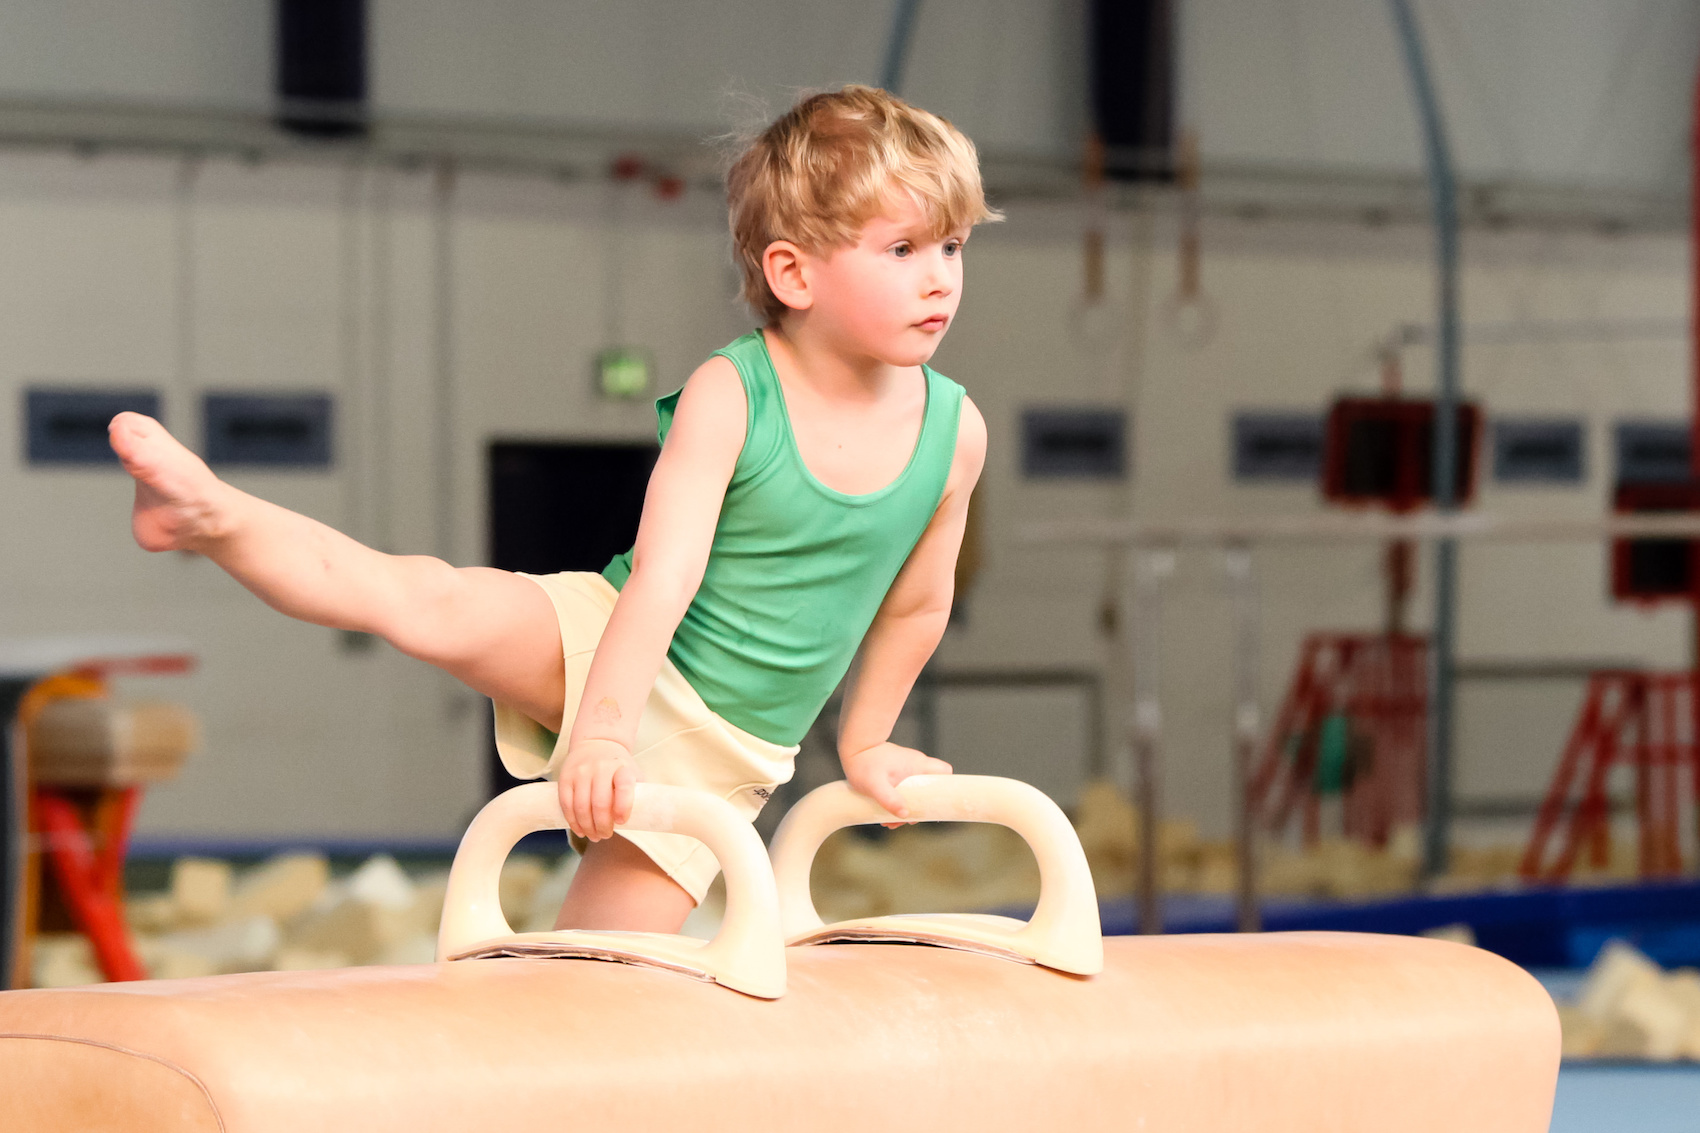 gymnastics-calgary-gymnastics-center-canada-kids-children-athletica